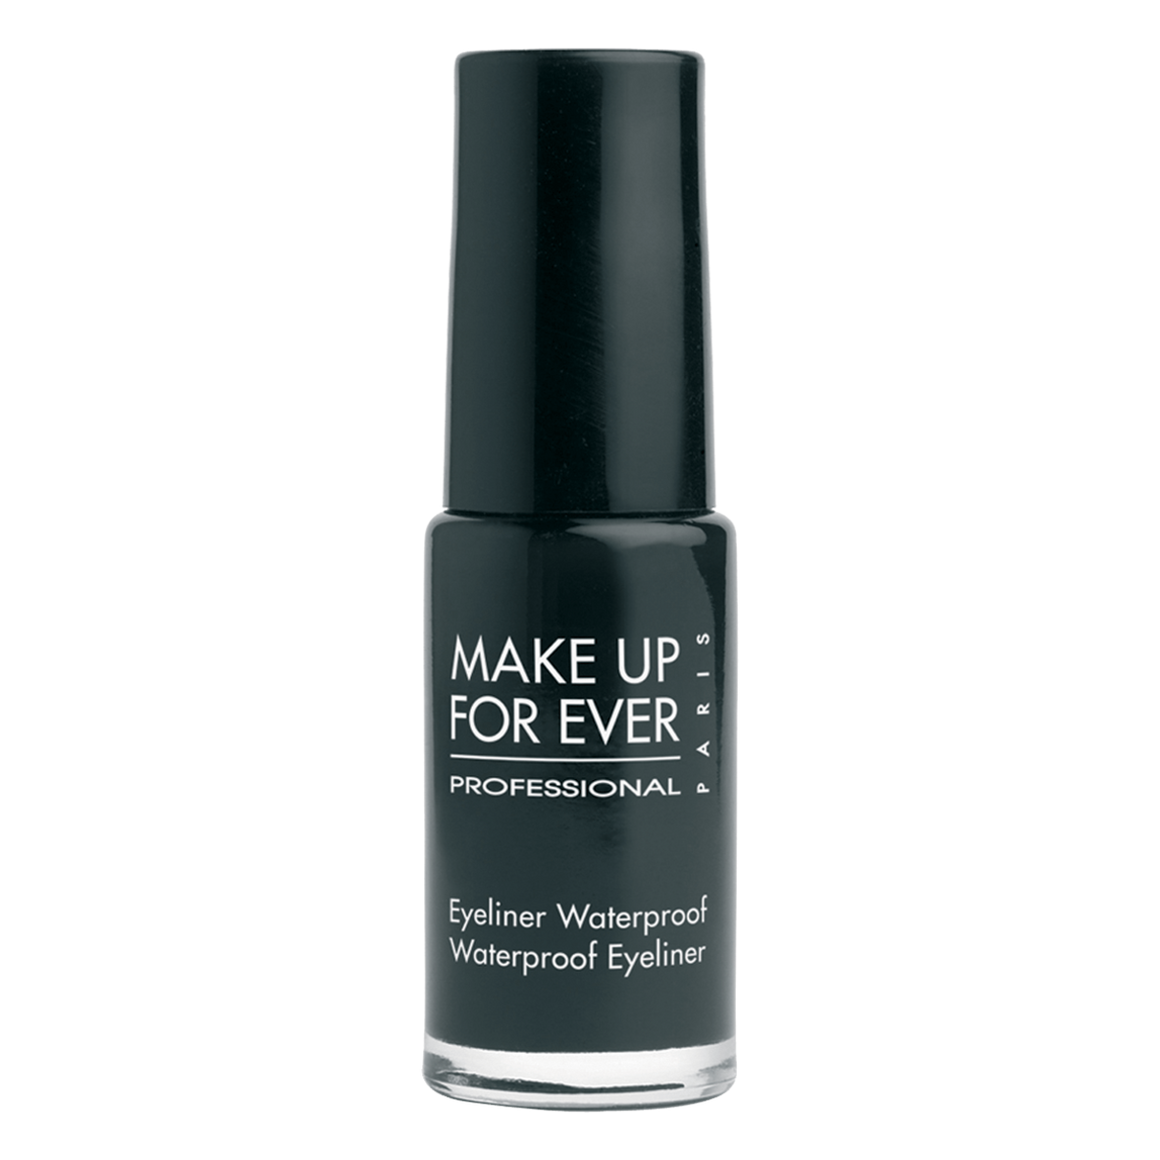 MUFE Waterproof Eyeliner